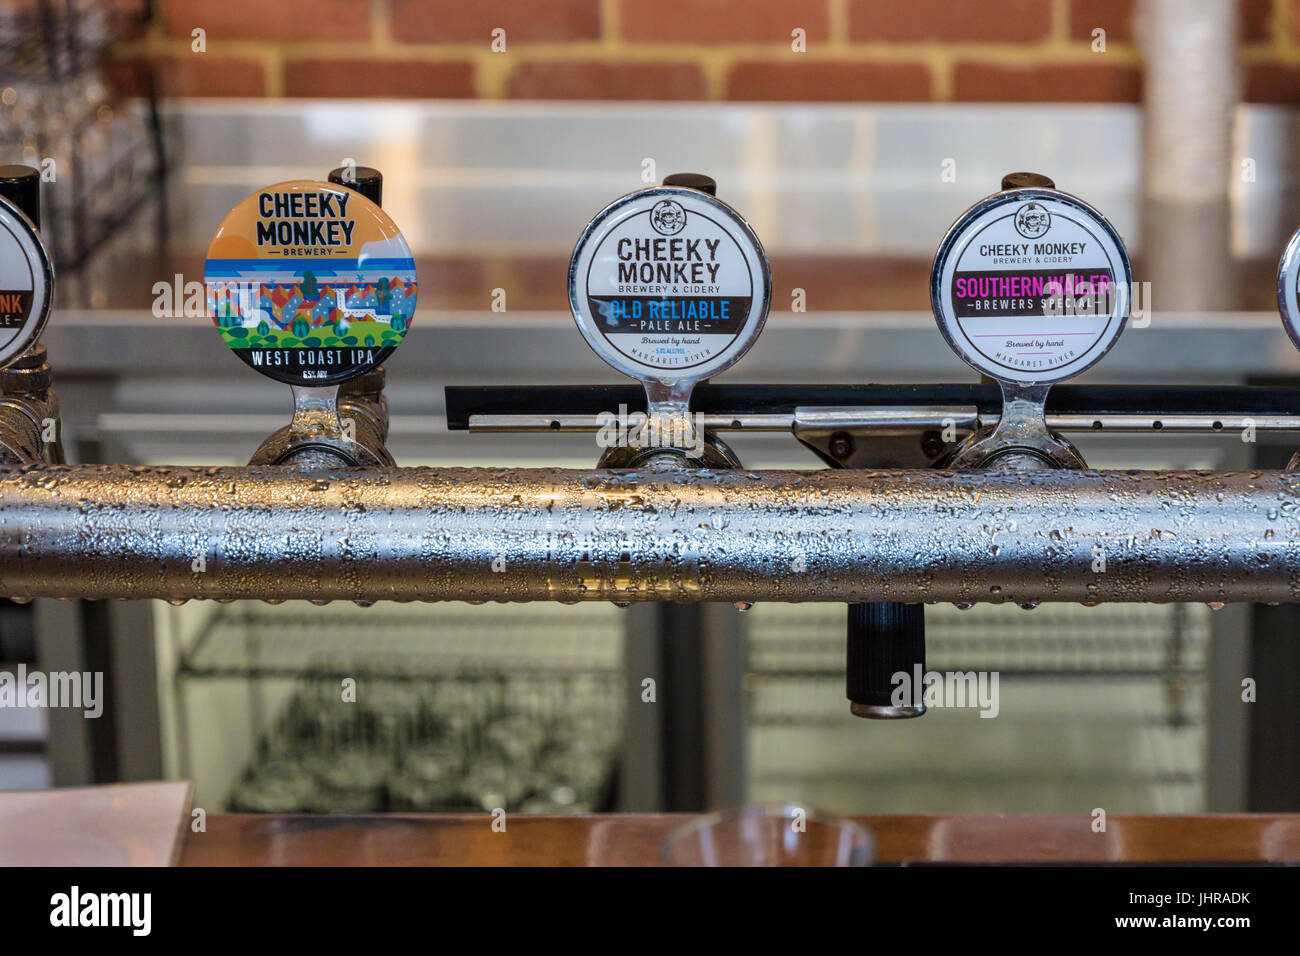 Beer taps detail at the Cheeky Monkey Brewery, Wilyabrup, Western Australia - Stock Image